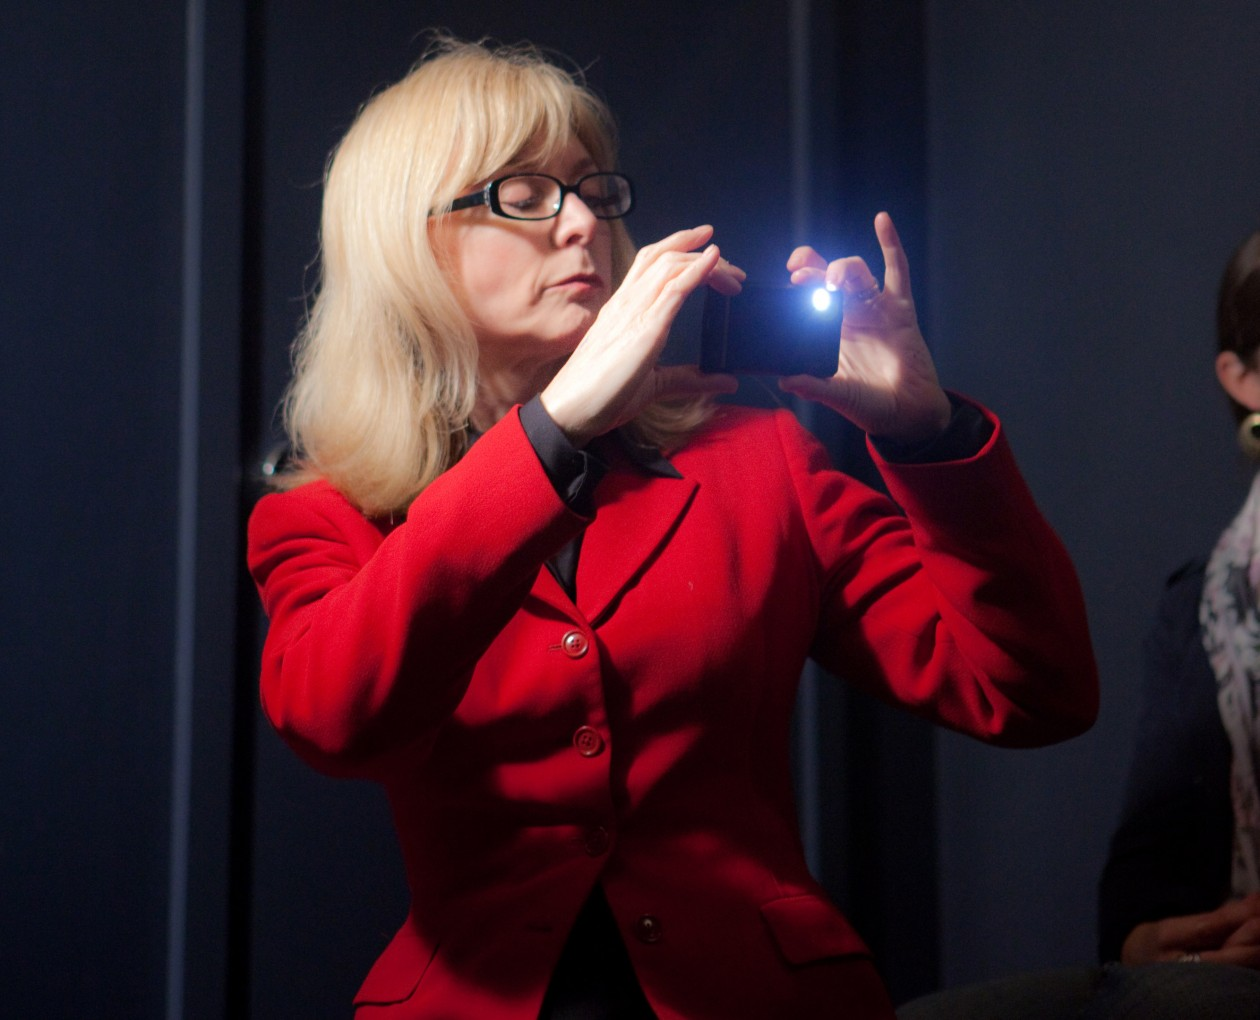 Nina Hartley Plays Hilary Clinton Image Copyright Kris Krüg